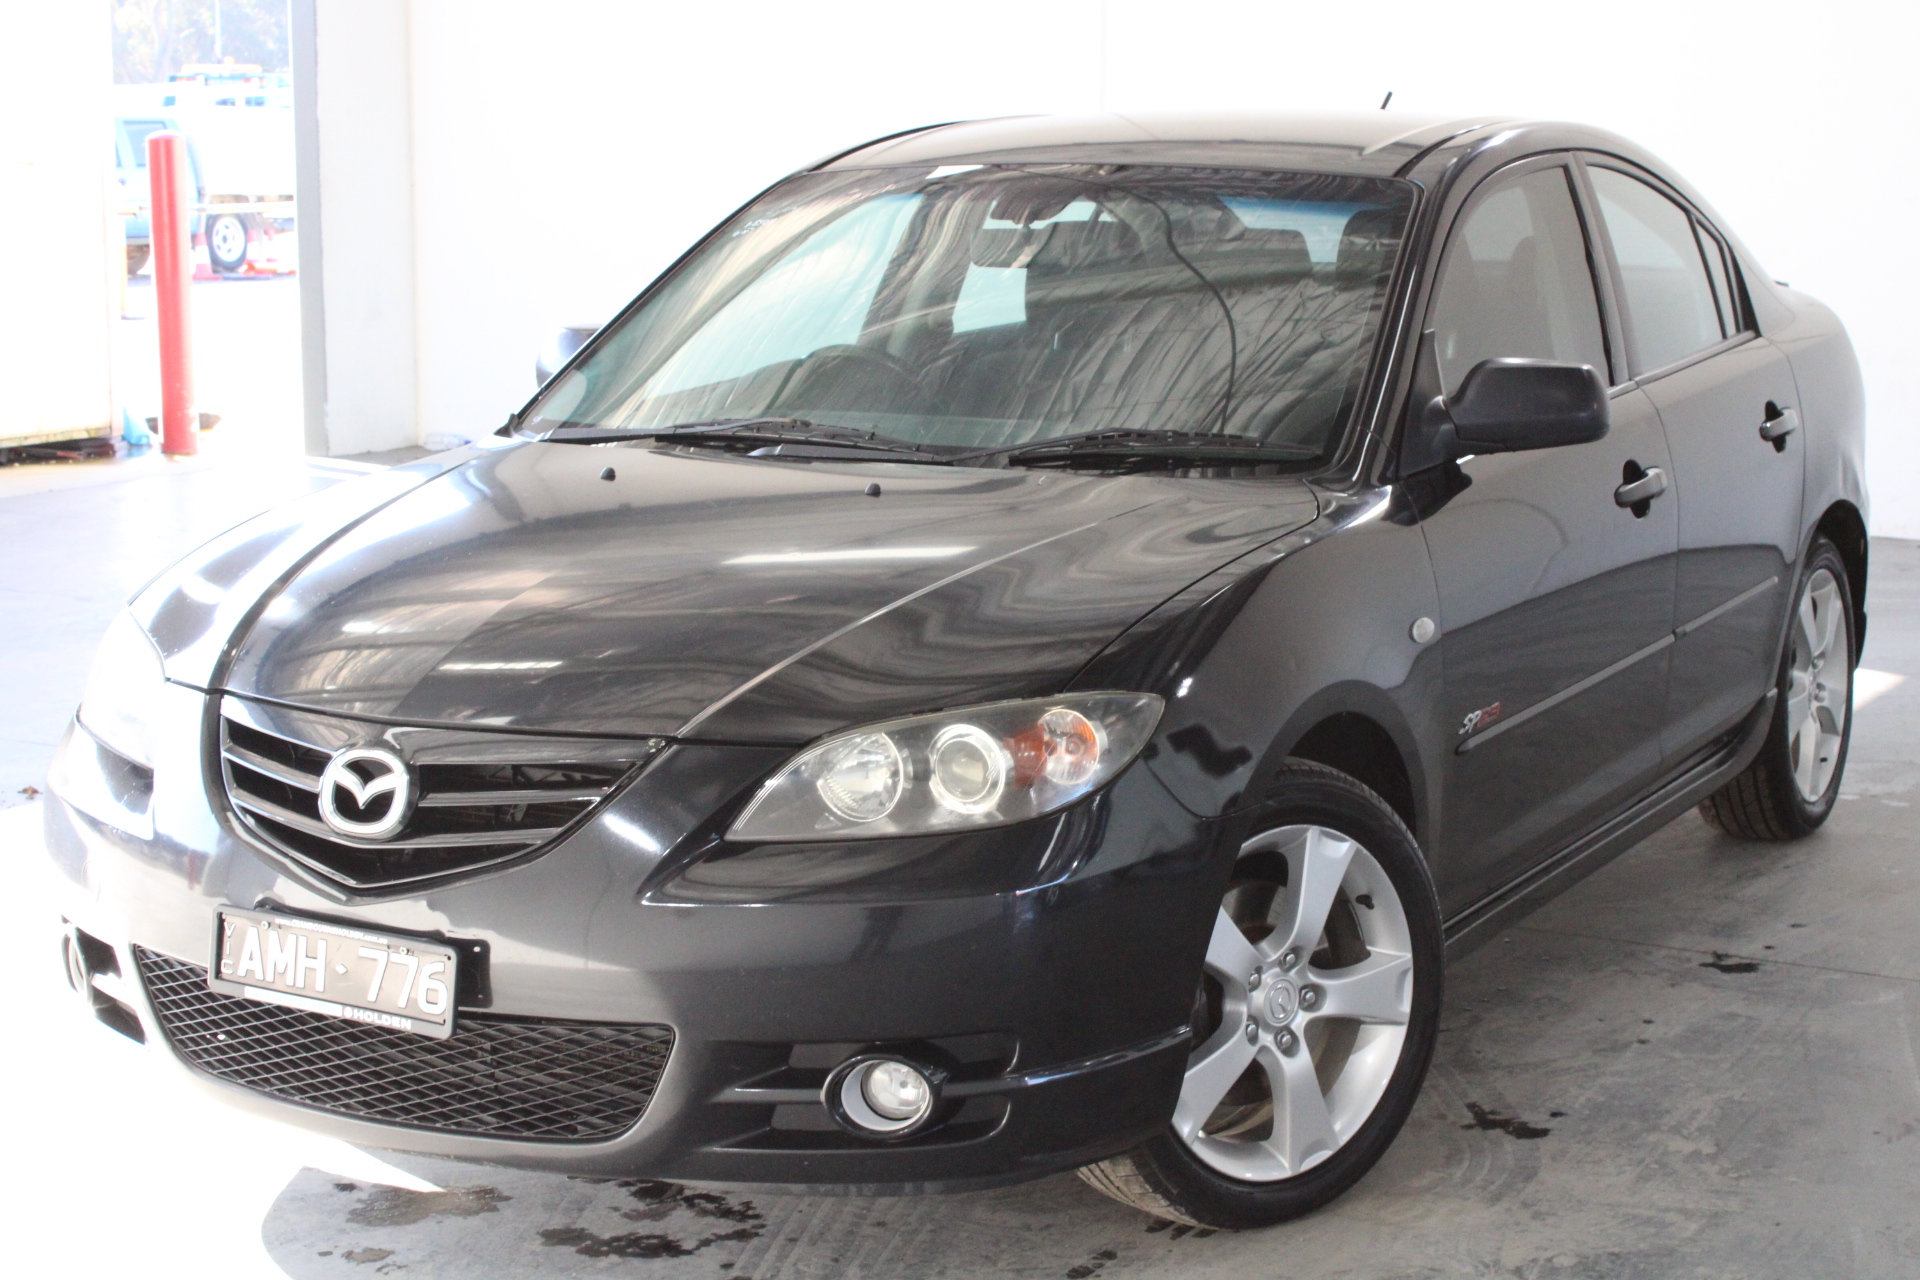 2004 Mazda 3 SP23 BK Automatic Sedan